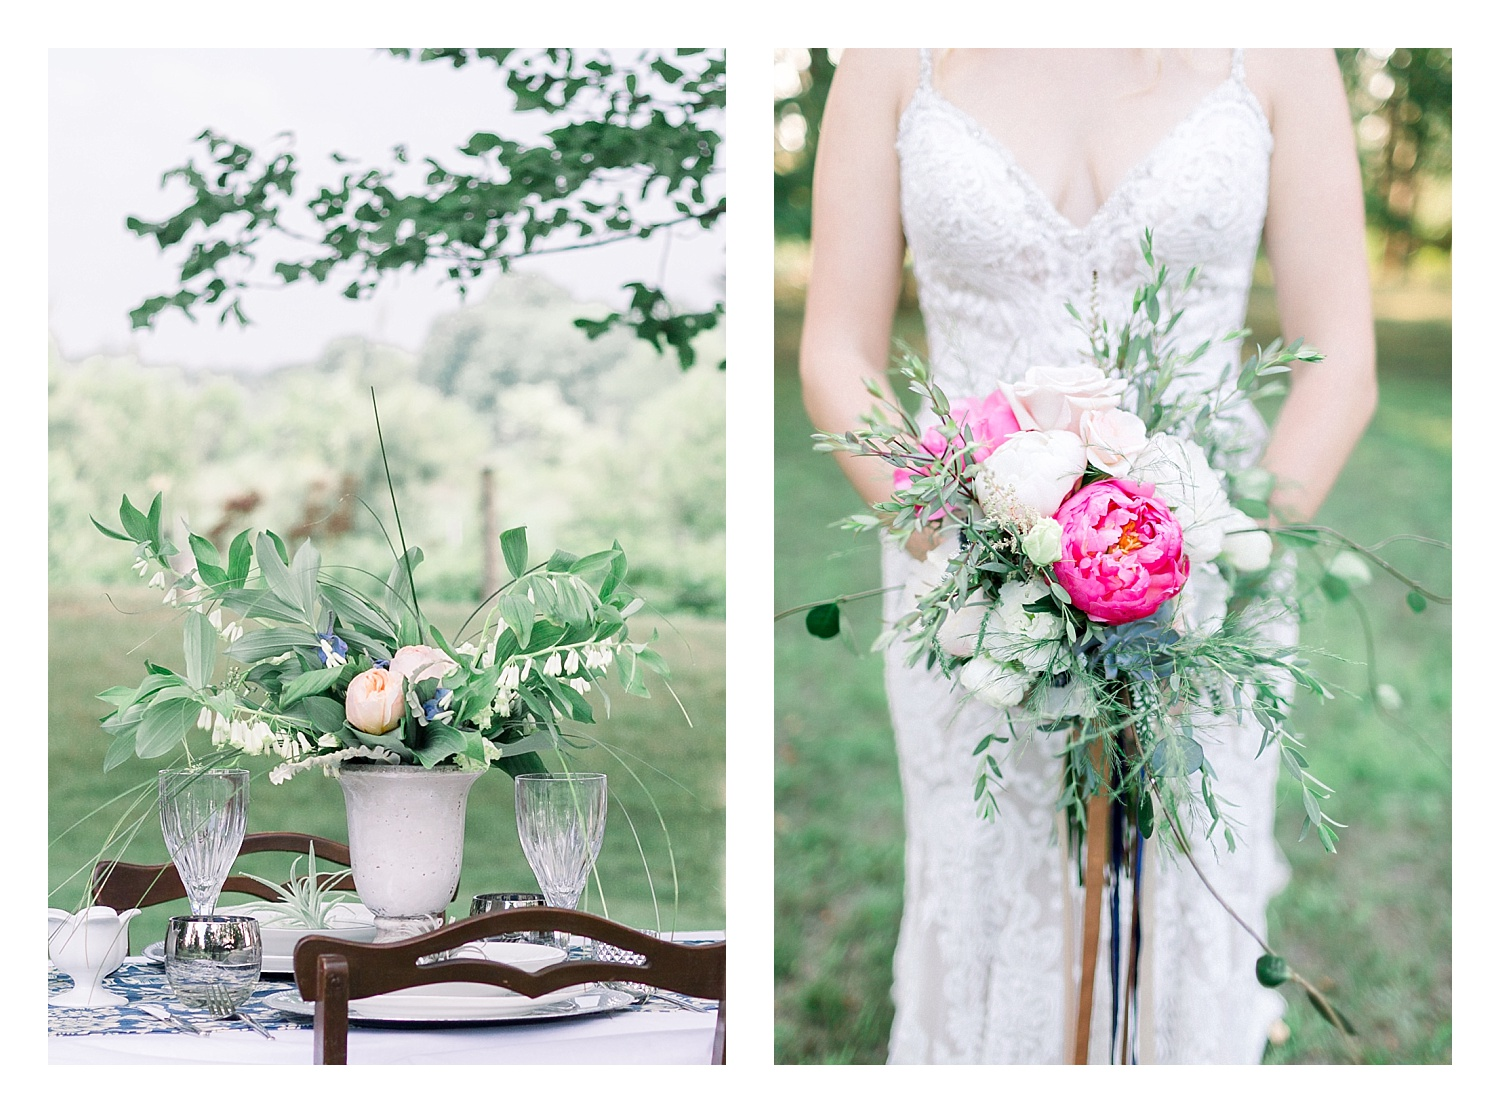 Left, floral design by Ebb & Flow Flowers. Right, by Hanna Mott.